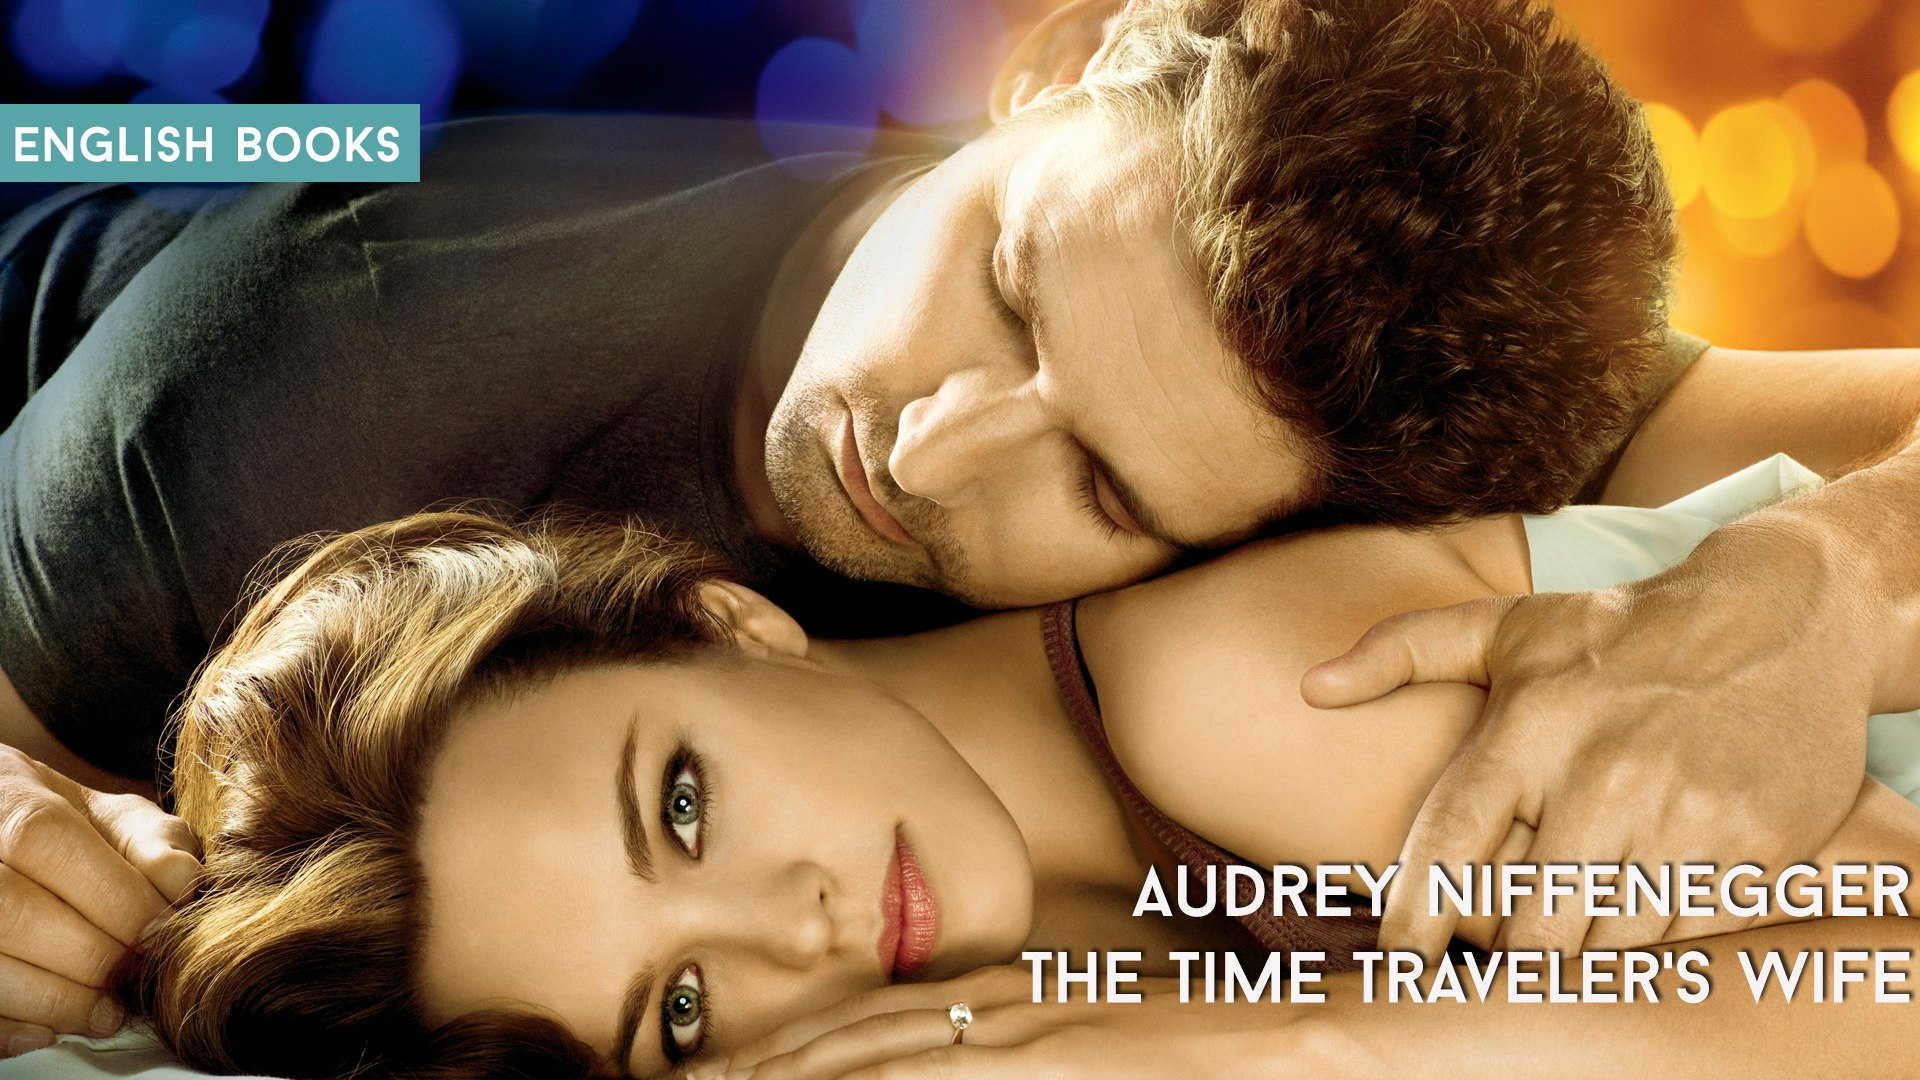 Audrey Niffenegger — The Time Traveler's Wife